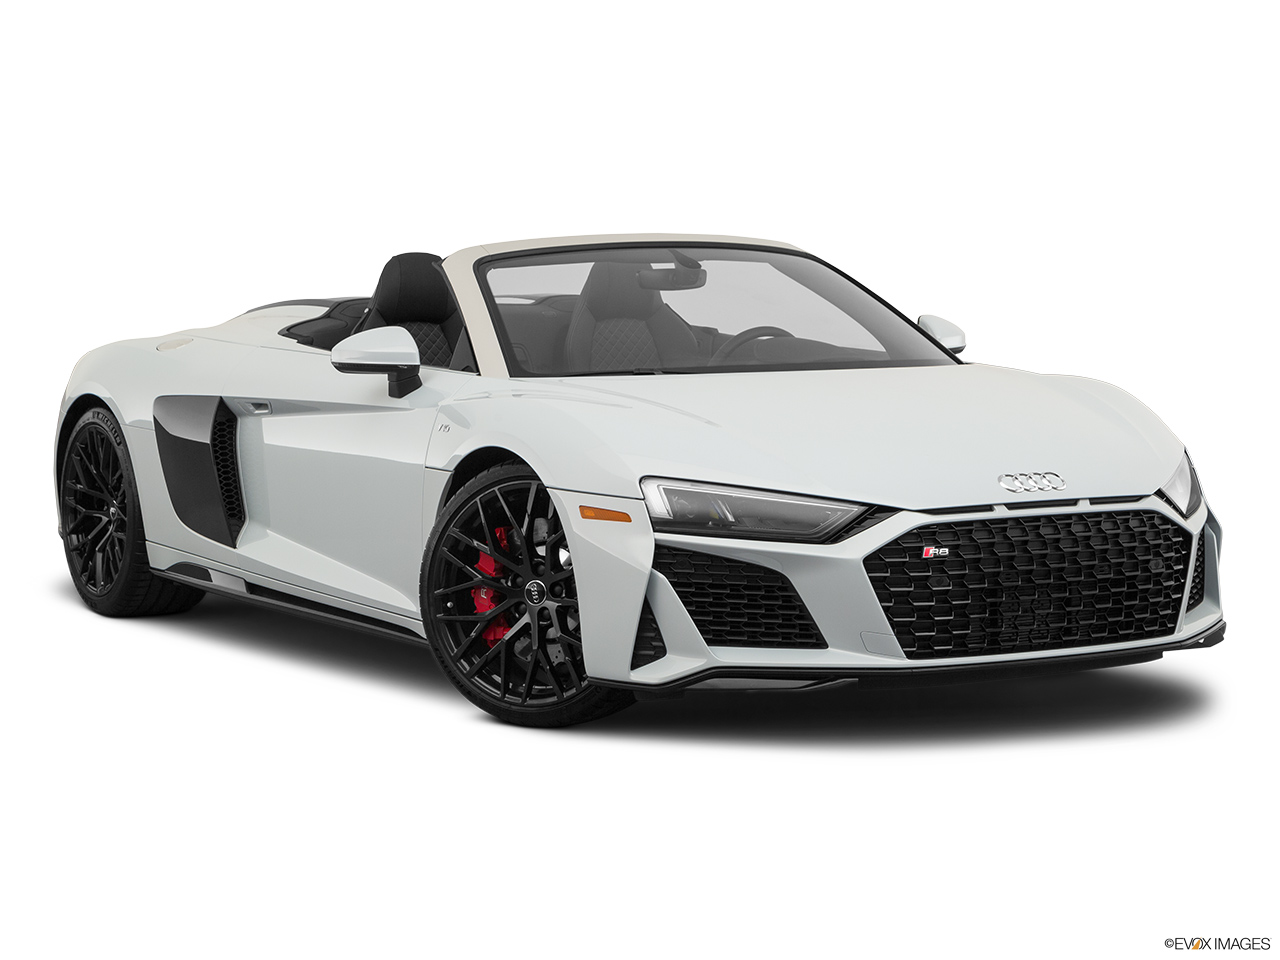 2020 Audi R8 Spyder V10 Front passenger 3/4 w/ wheels turned.